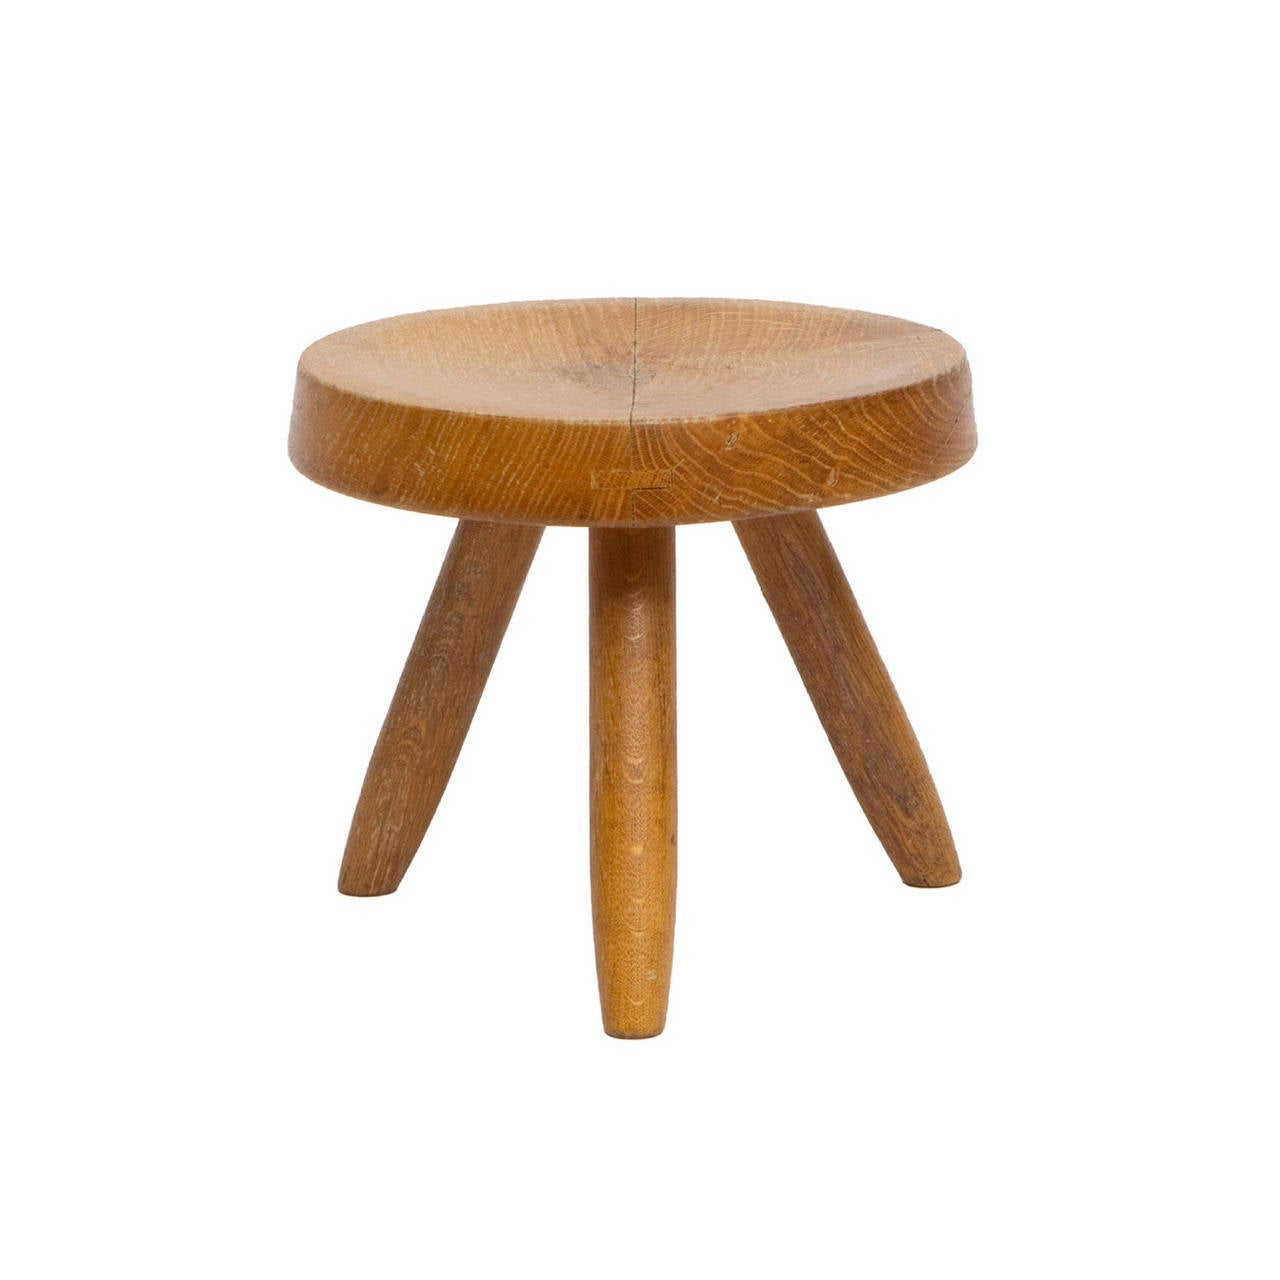 Charlotte Perriand Wooden Stool, circa 1950